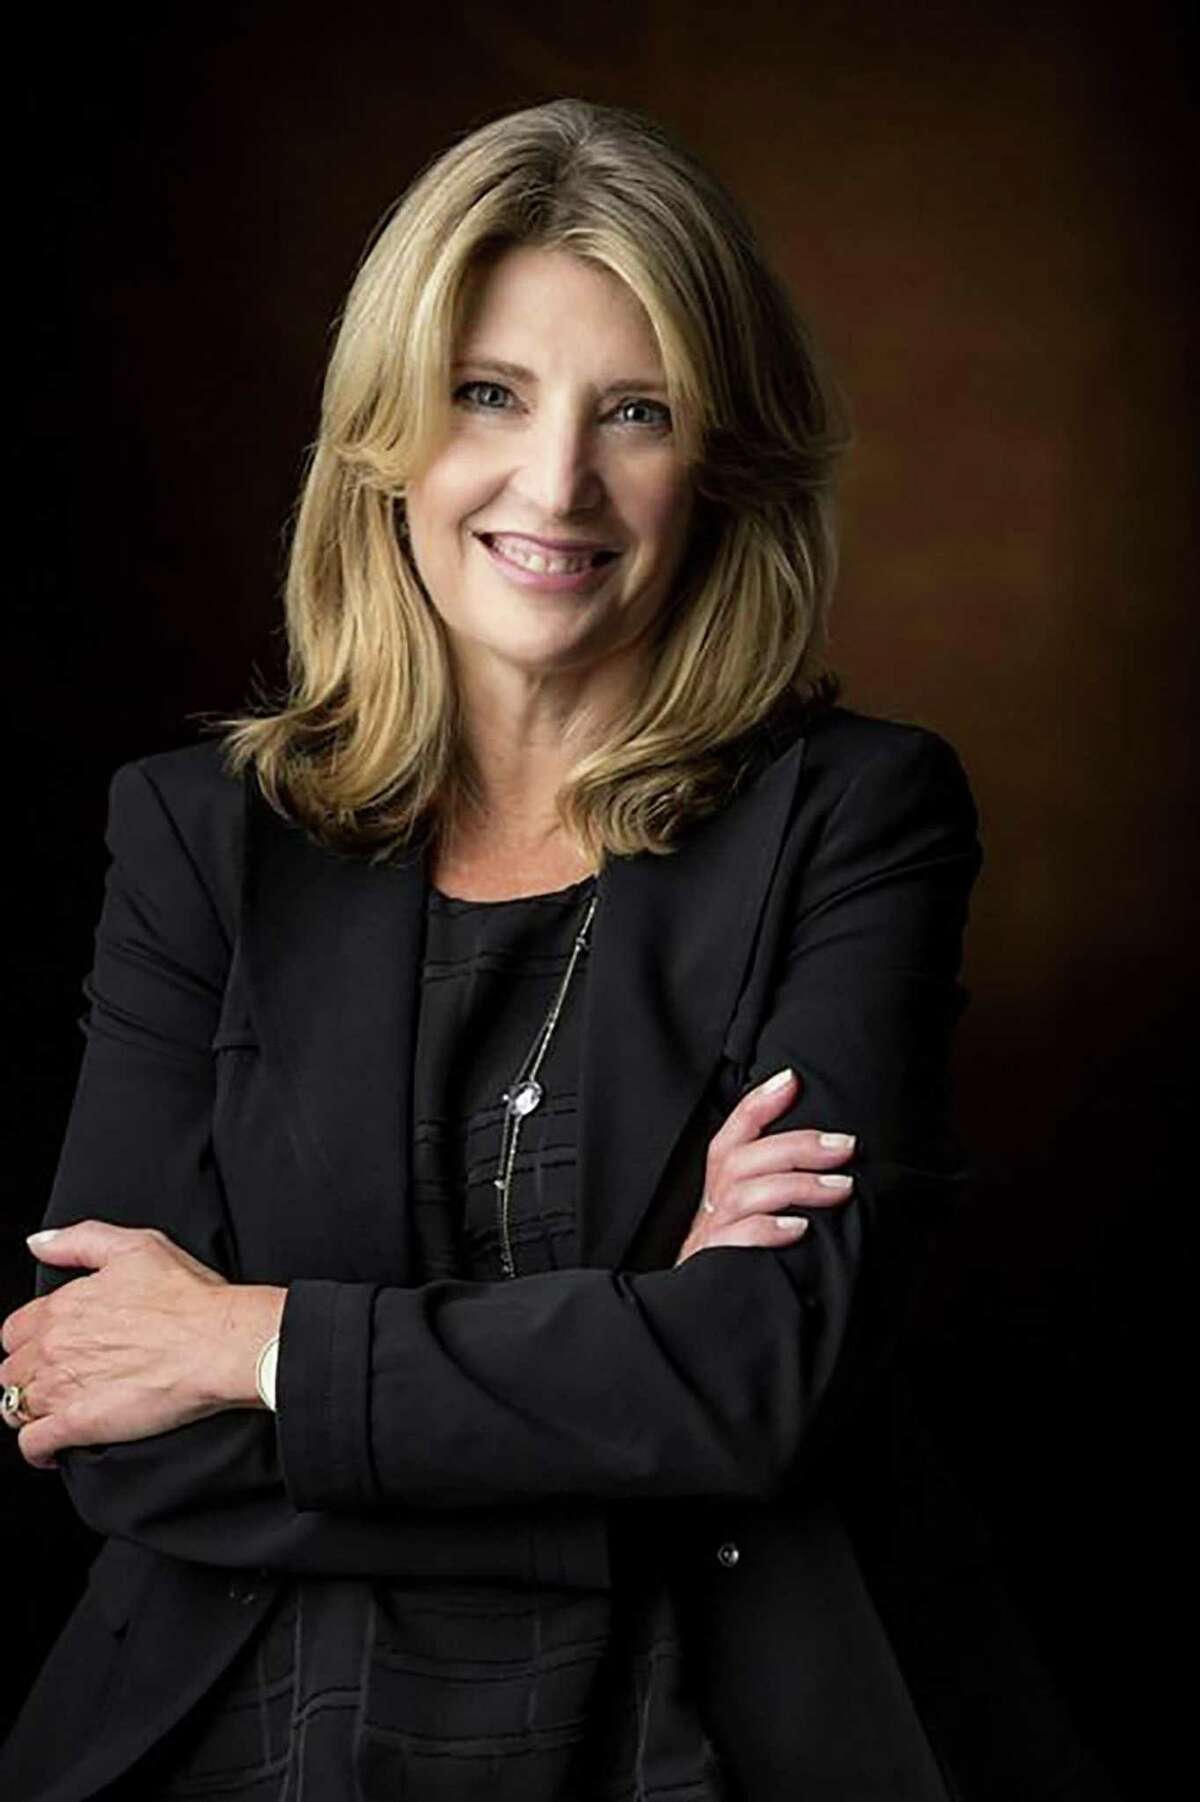 Cindi Bigelow, who is the president, and also the CEO of the Bigelow Tea company, recently received an honorary degree from the Housatonic Community College, (HCC,) at the school's 54th commencement exercises on Thursday, May 27, 2021.